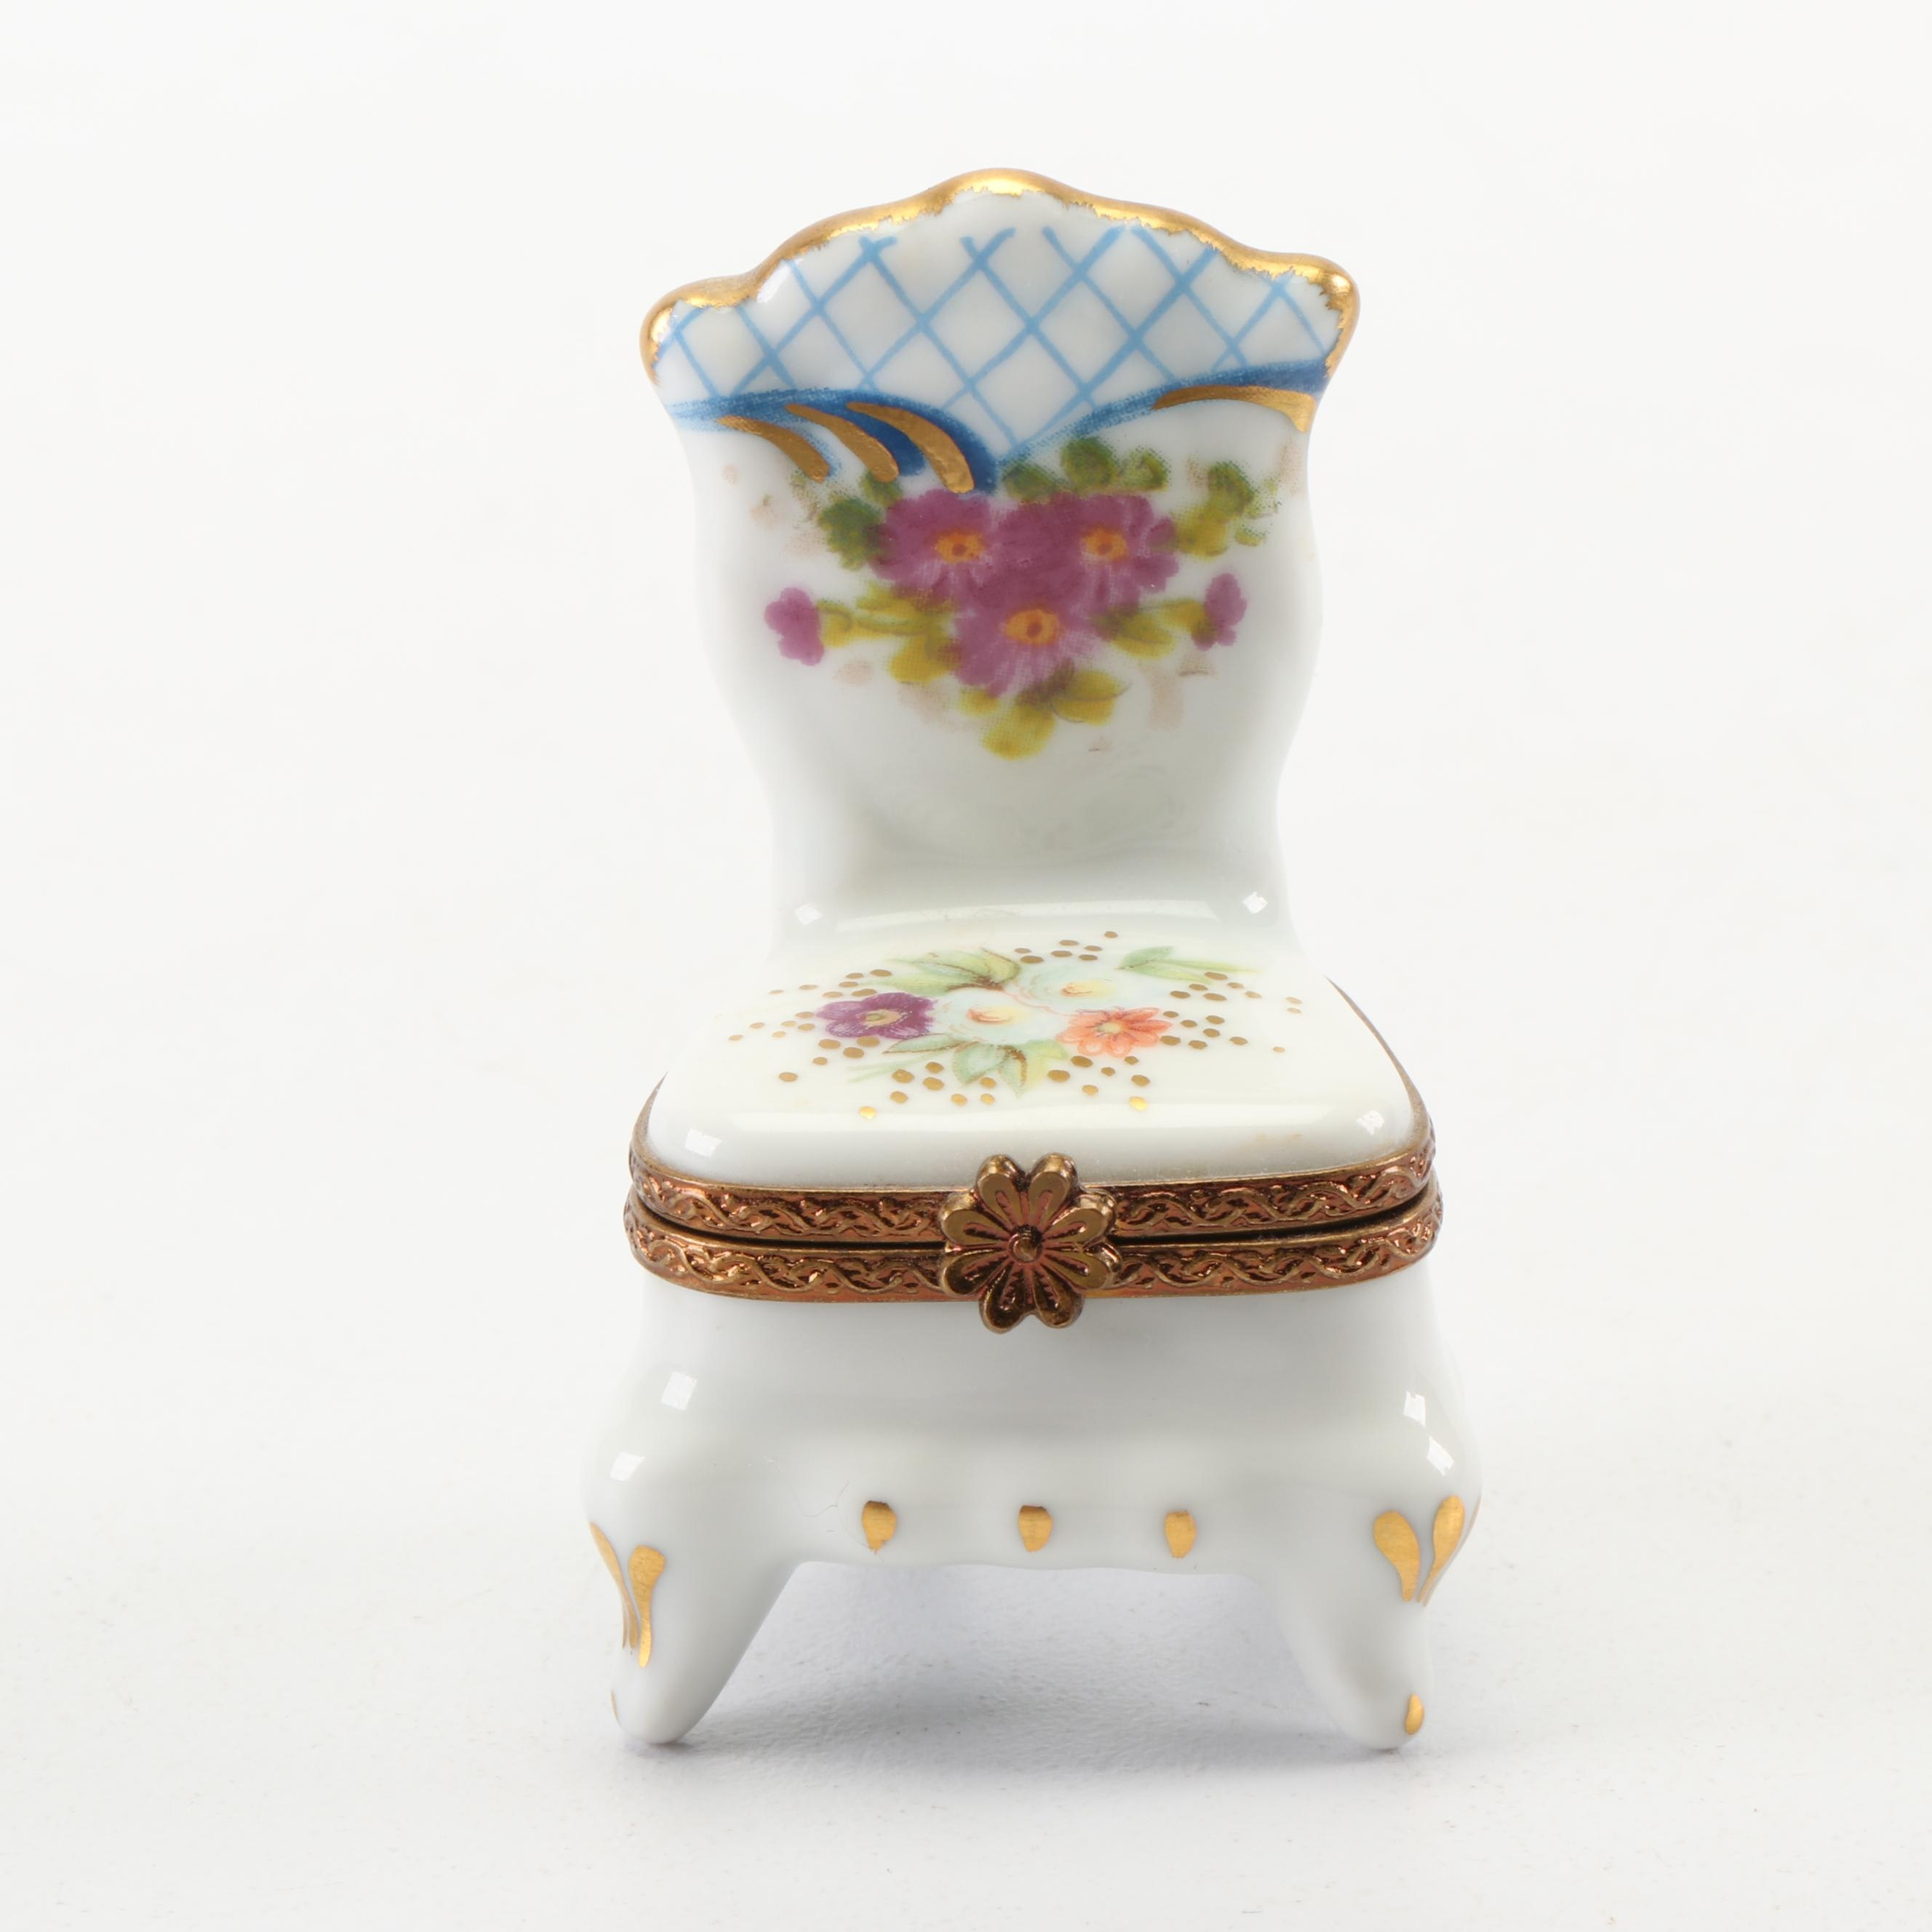 Limoges Hand-Painted Chair Shaped Porcelain Trinket Box